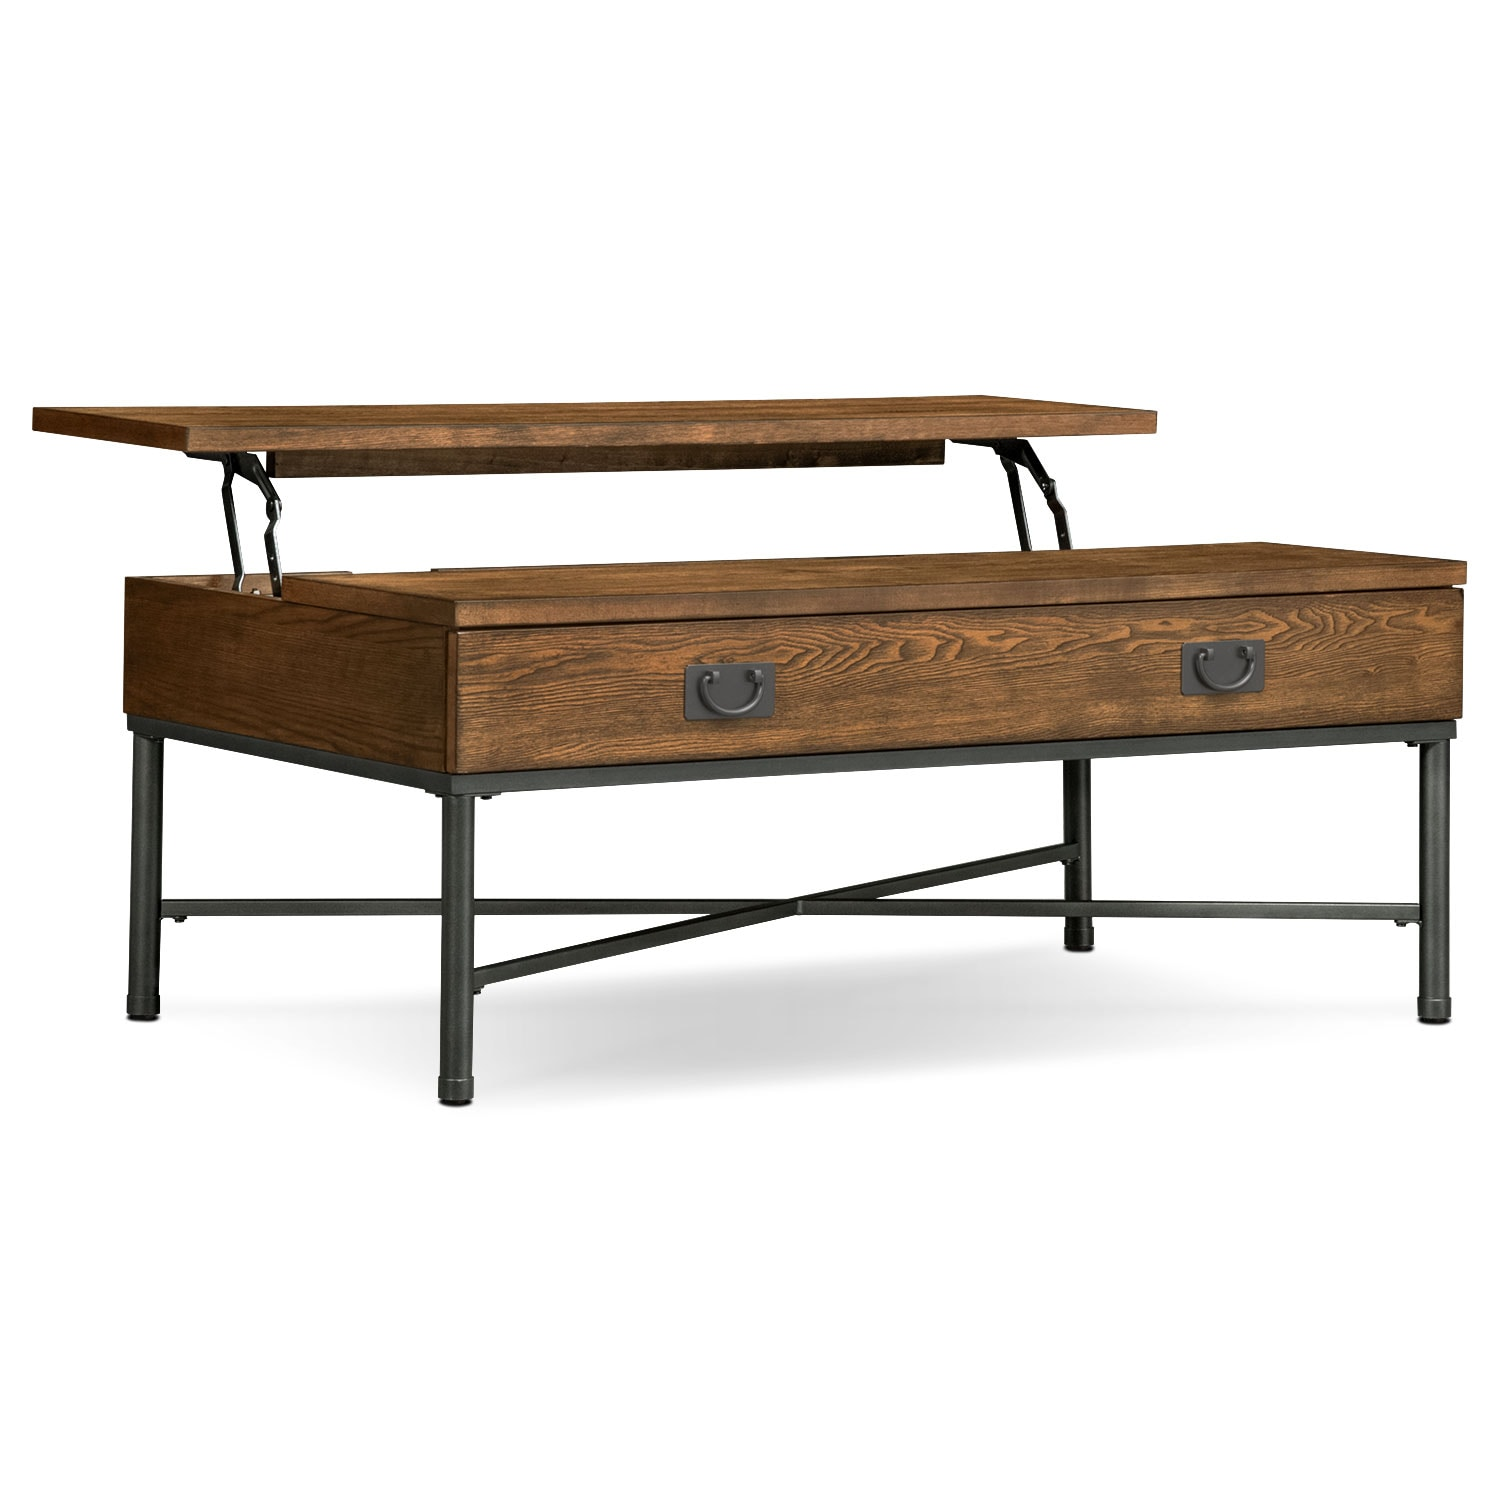 shipyard trunk cocktail table - nutmeg | value city furniture